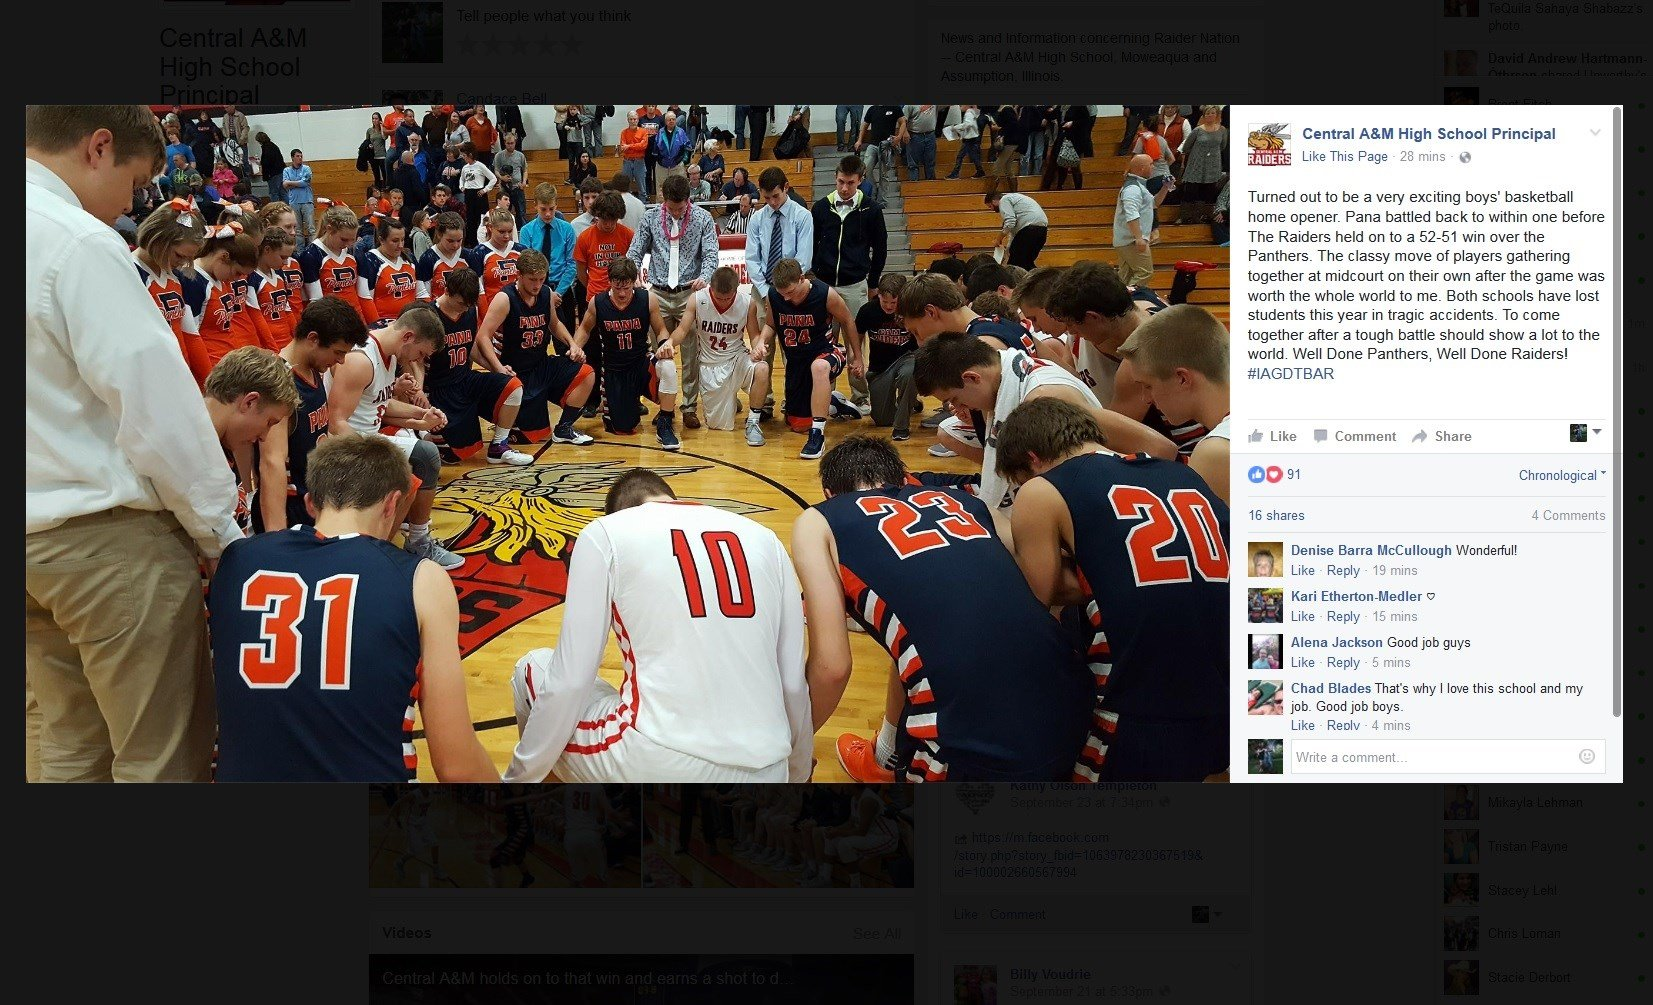 Players from Pana and Central A&M gather for prayer after their nail-biting 52-51 game on Tuesday night. (Photo: CAM Principal Charlie Brown)